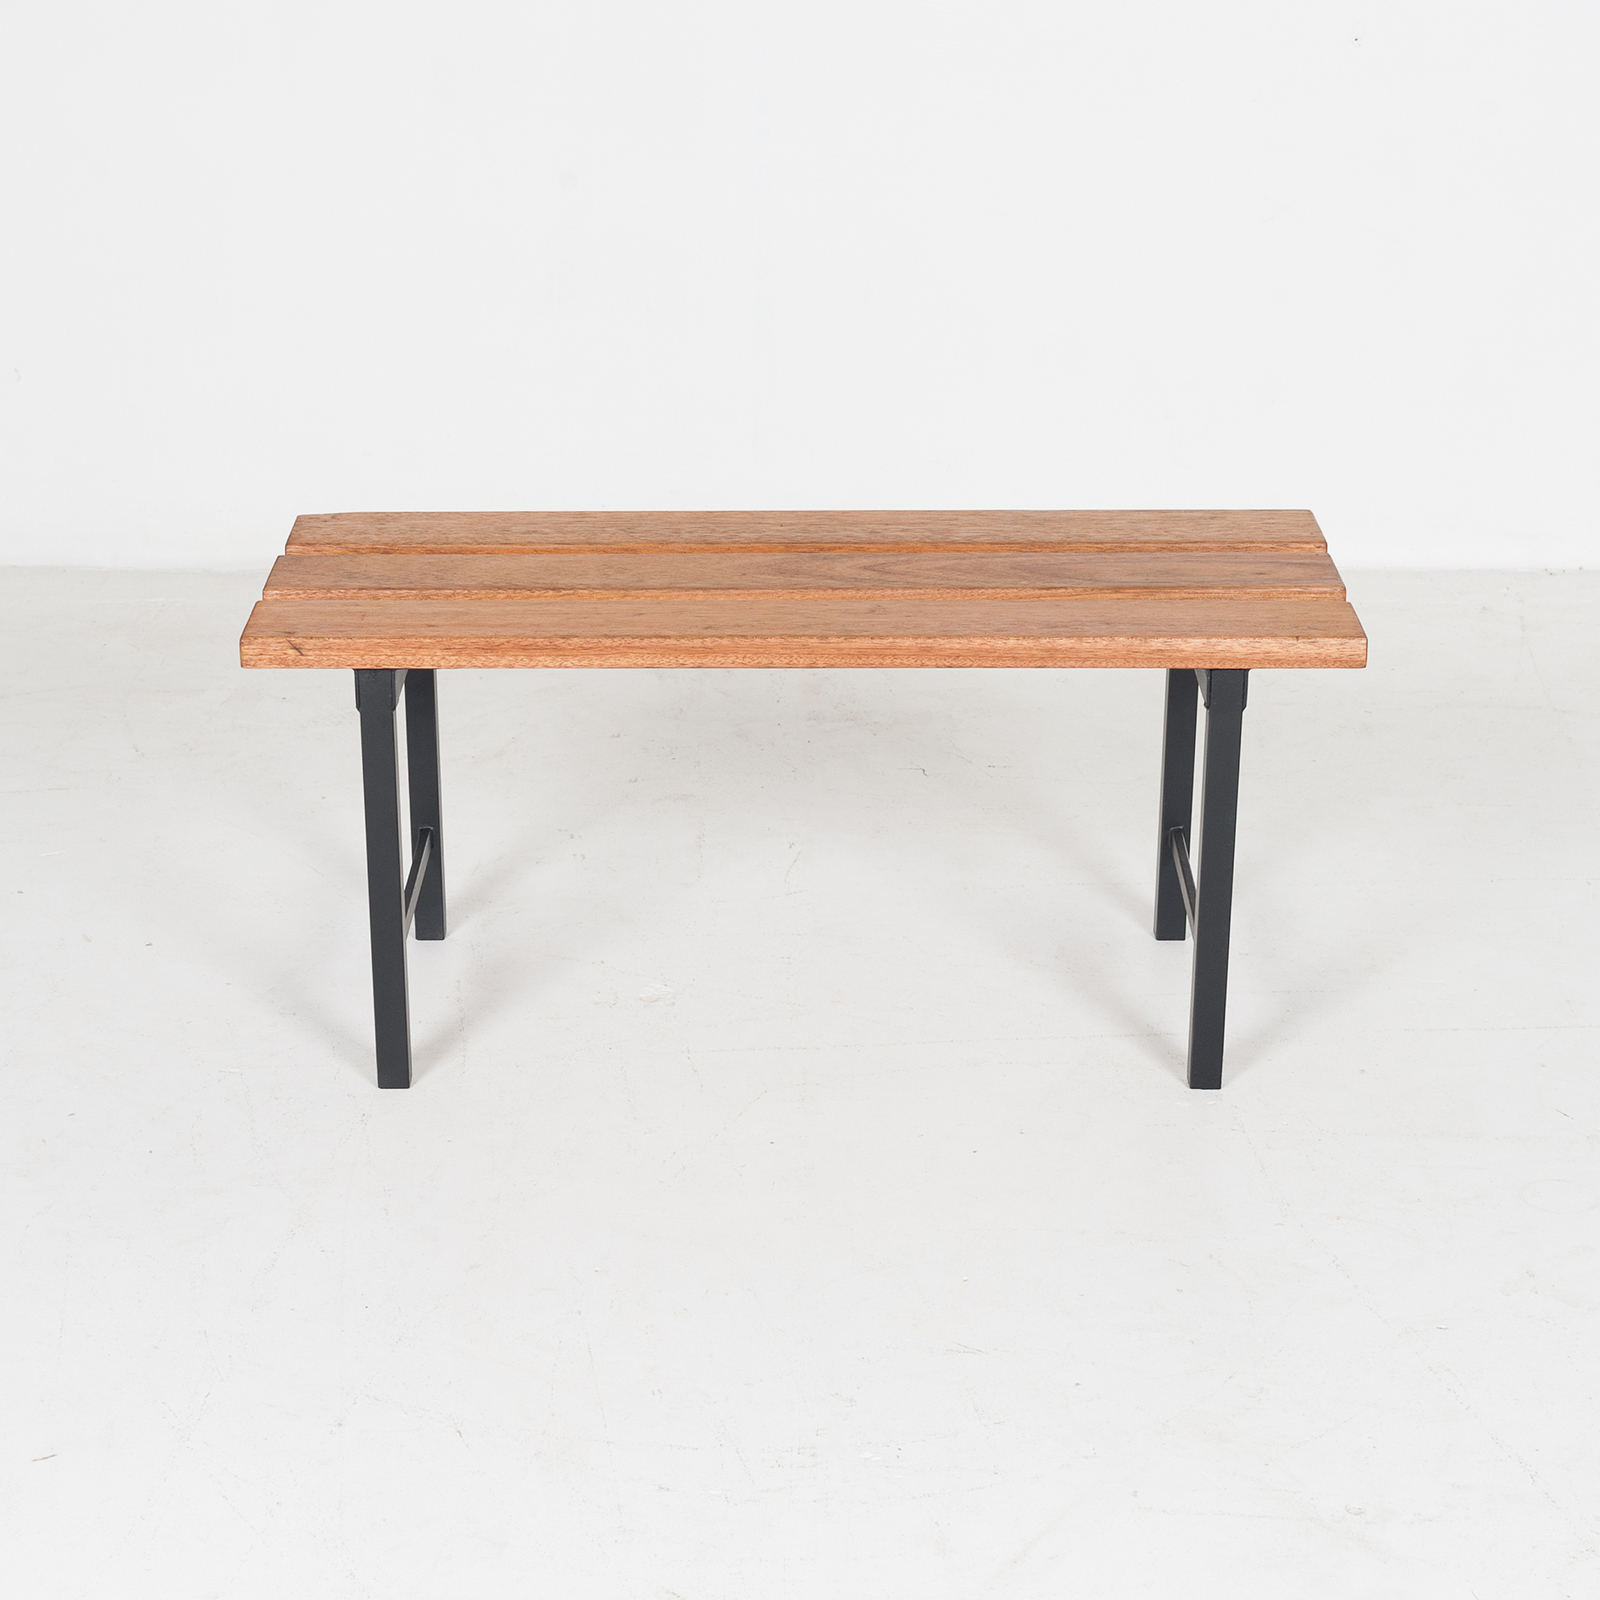 Two Seat Timber And Steel Bench, 1960s, The Netherlands49